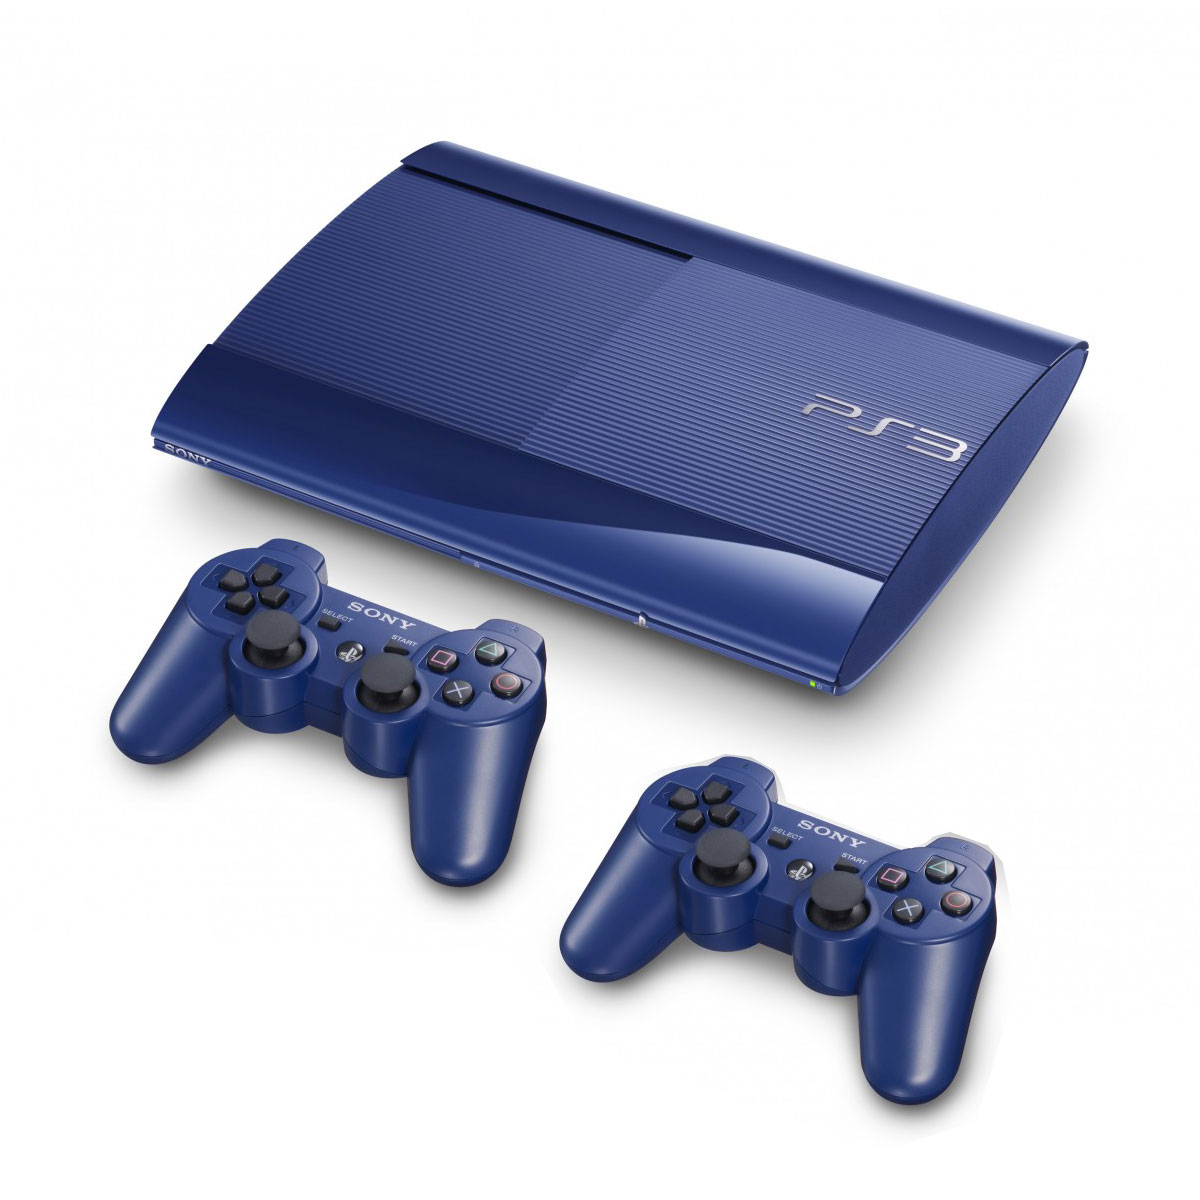 sony playstation 3 ultra slim 500 go bleue 2 manettes achat vente sur. Black Bedroom Furniture Sets. Home Design Ideas